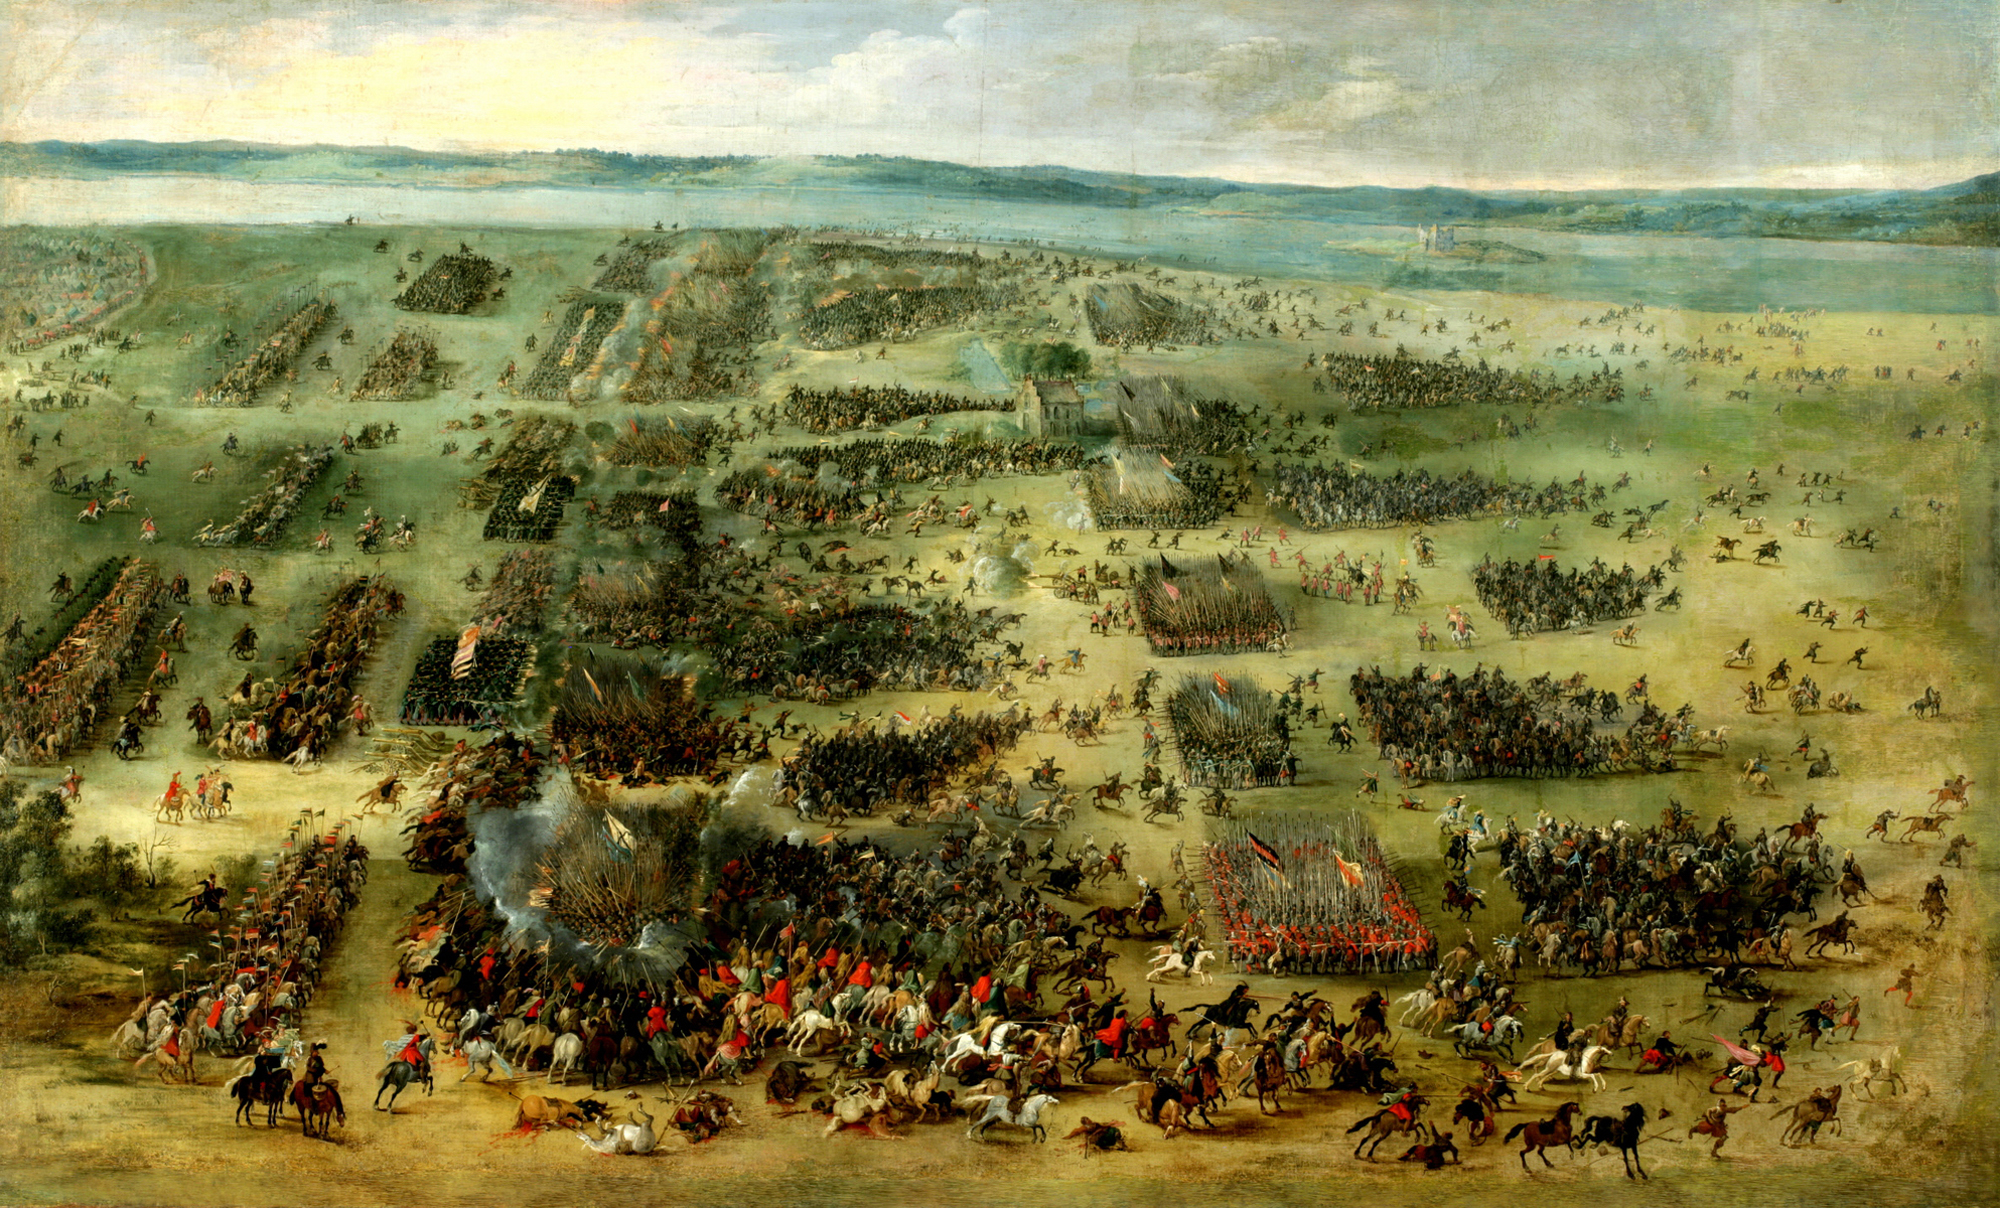 http://vesture.eu/images/8/89/Battle_of_Kircholm.jpg